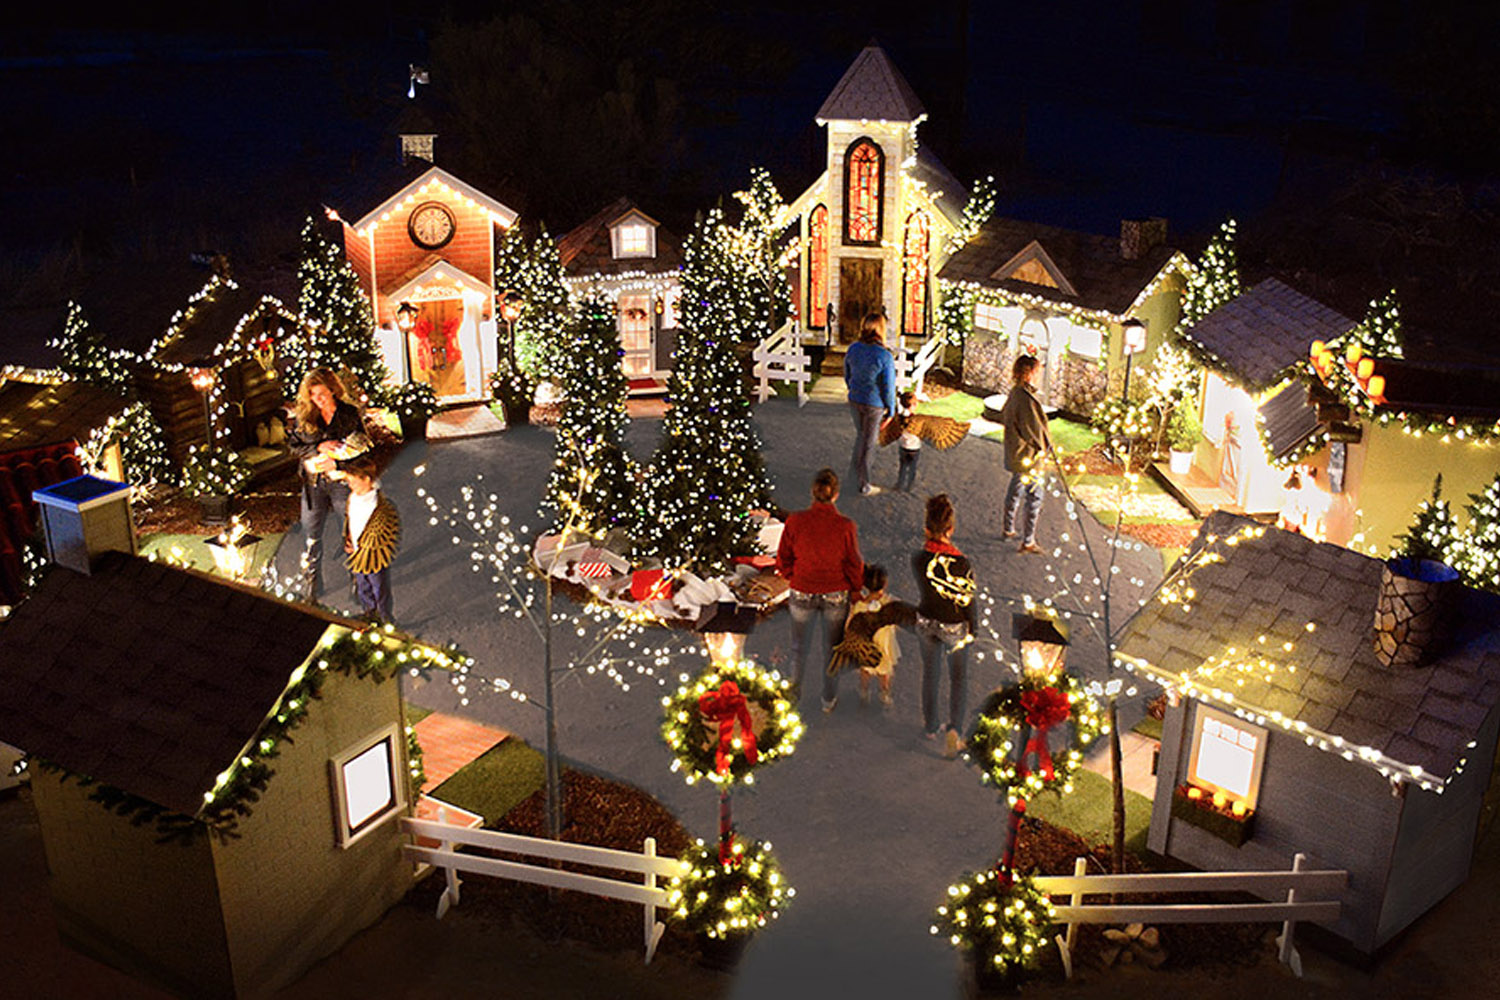 sedona christmas village